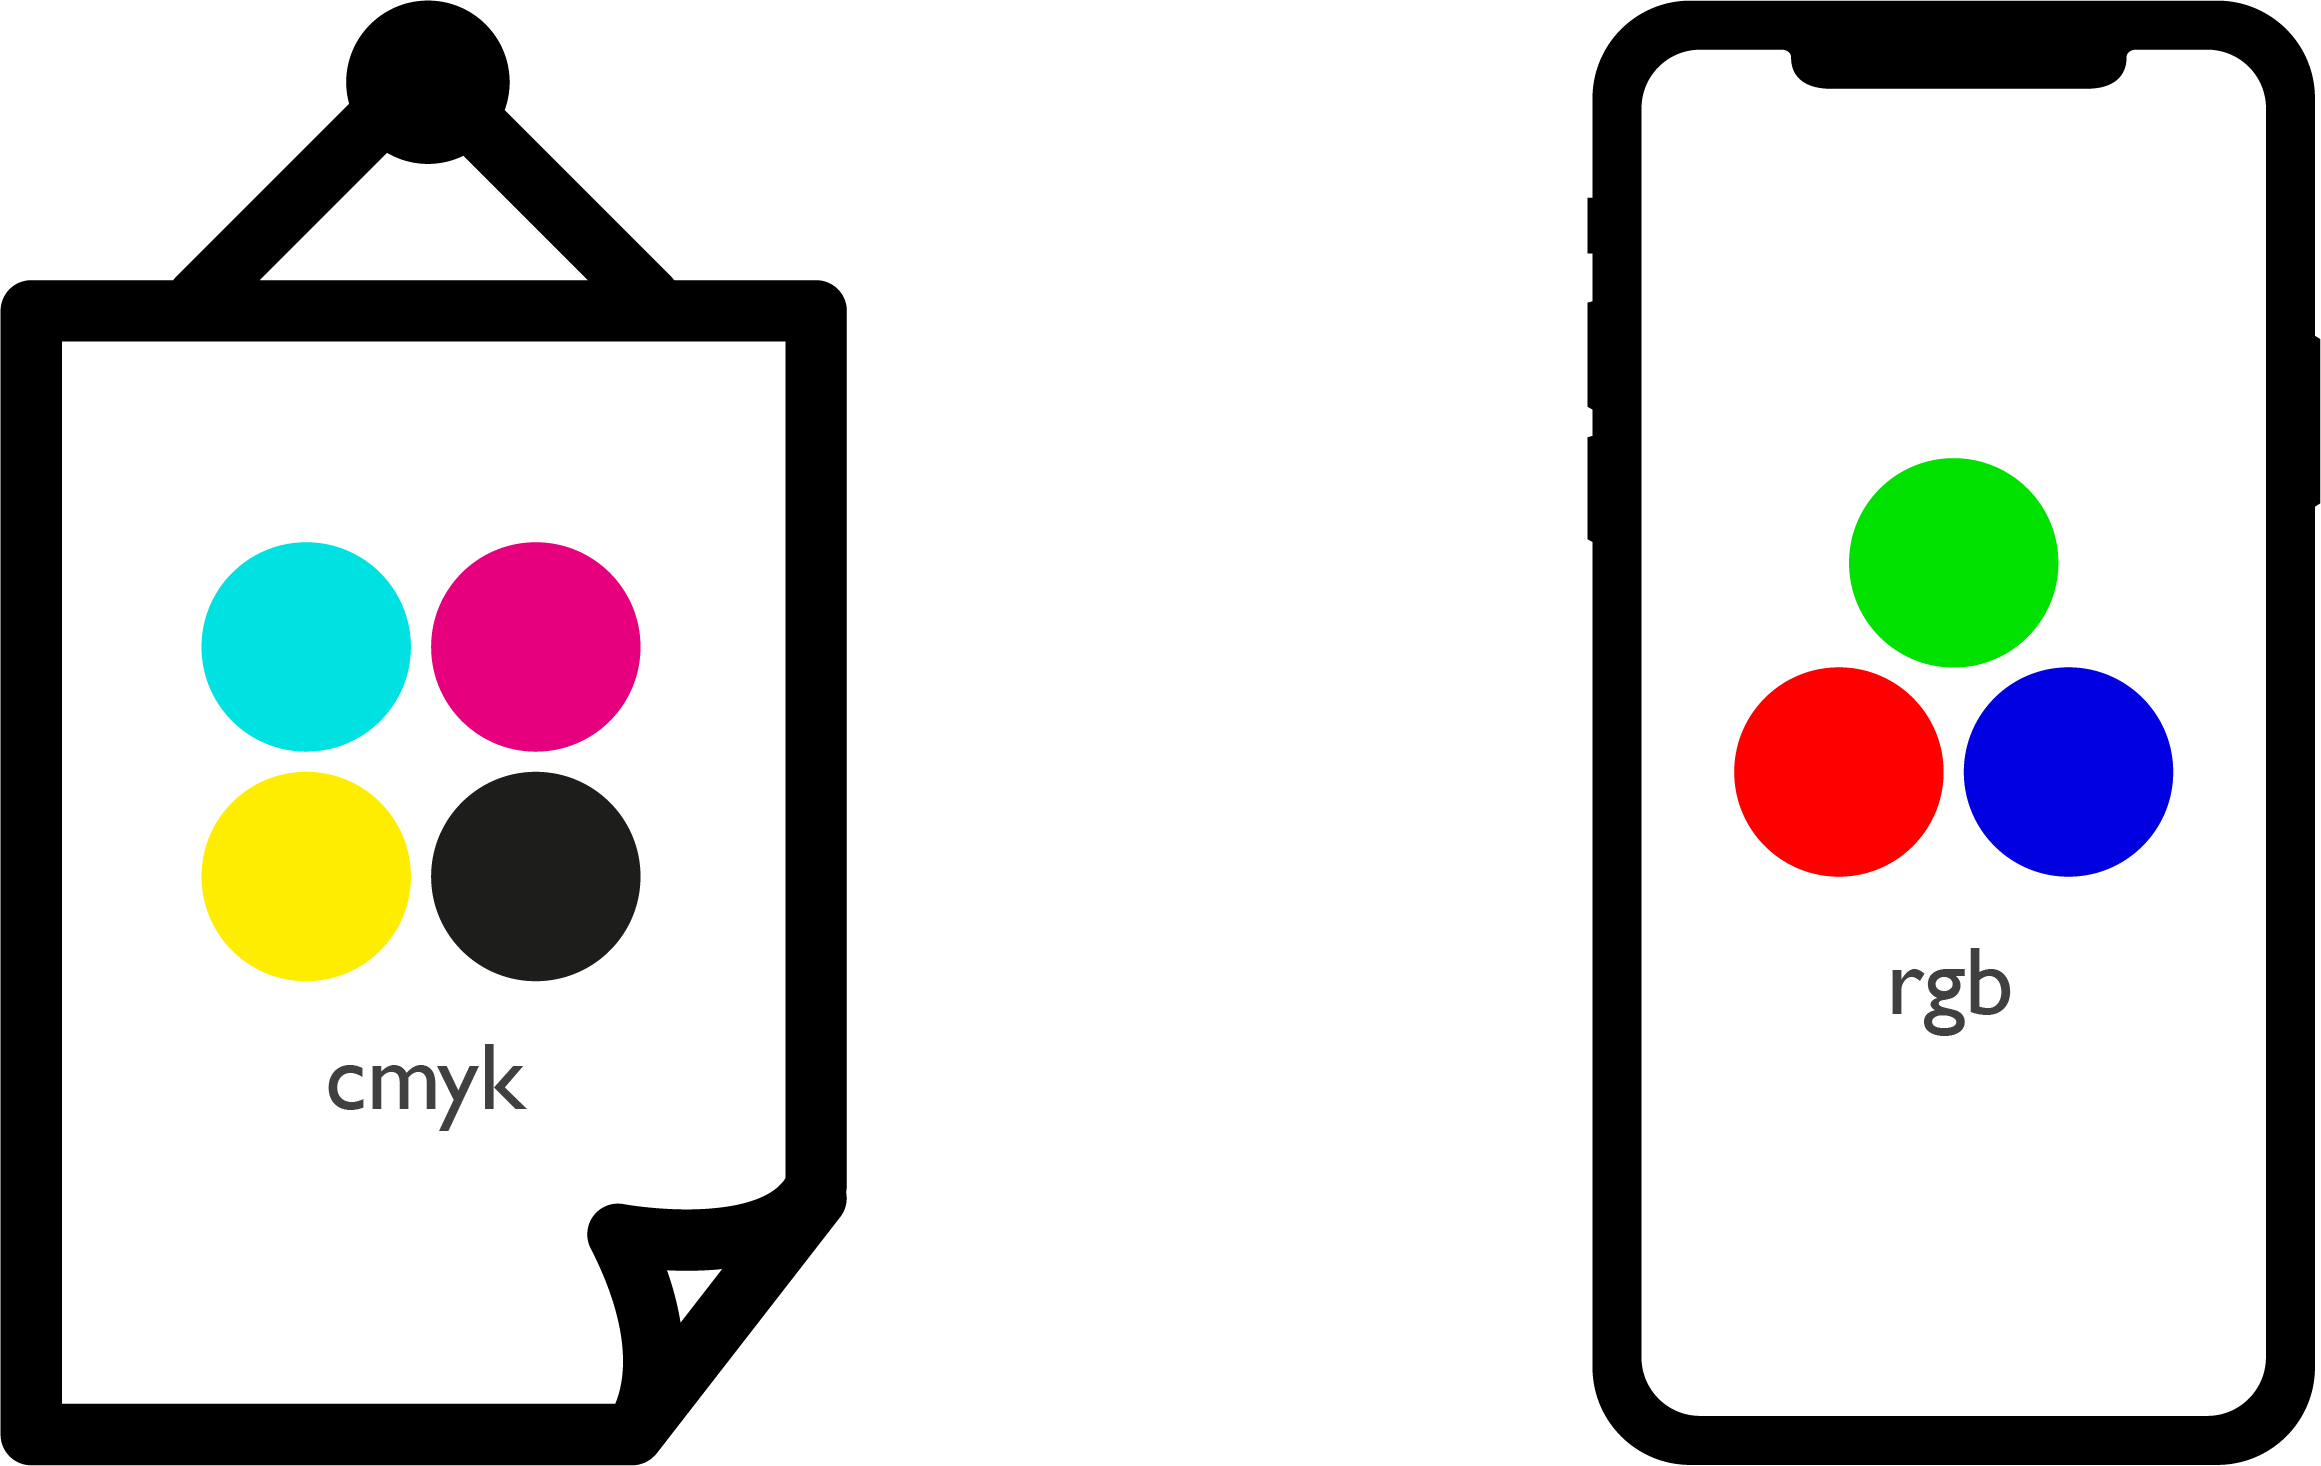 visual example of cmyk vs rgb